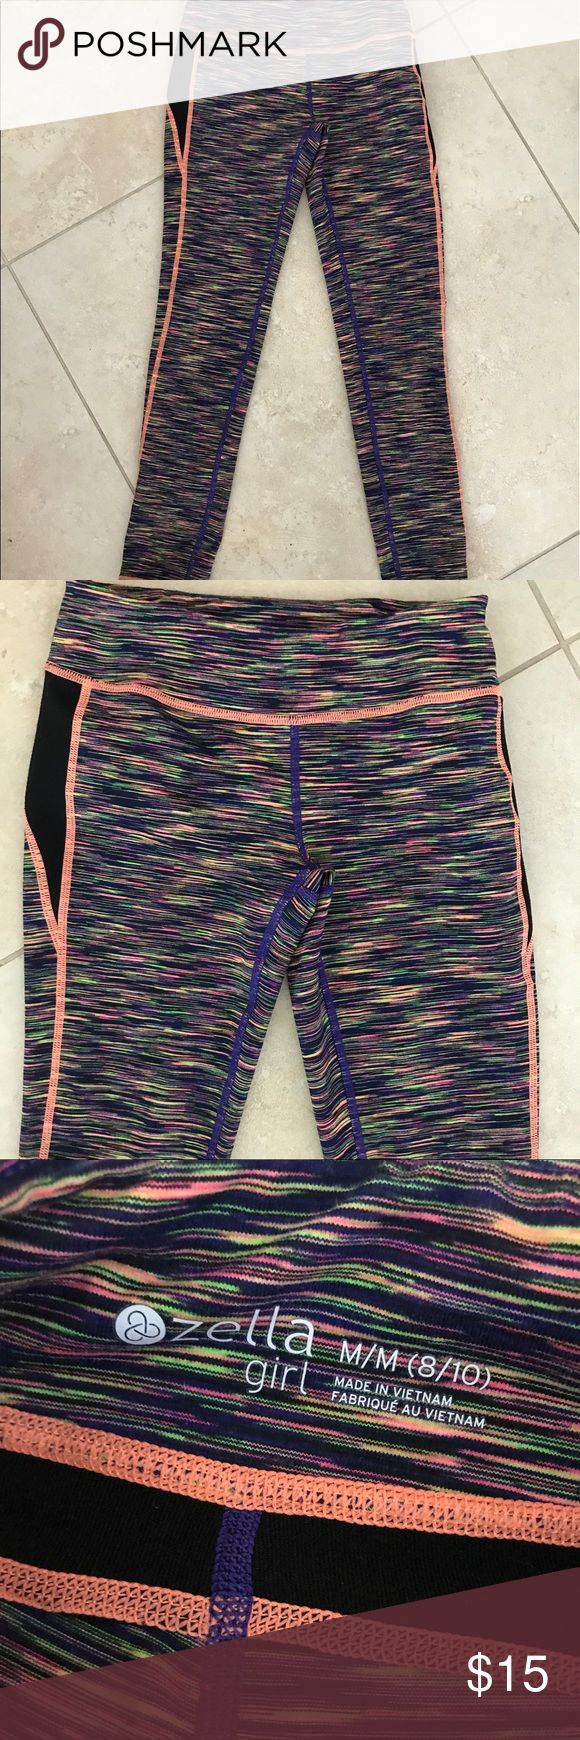 Zella girl spandex athletic yoga pants leggings Zella girl spandex athletic pants from Nordstroms girls 8/10 super cute, comfy and bright ! Little zipper pocket in back! Bundle and save - excellent condition Zella Girl Pants